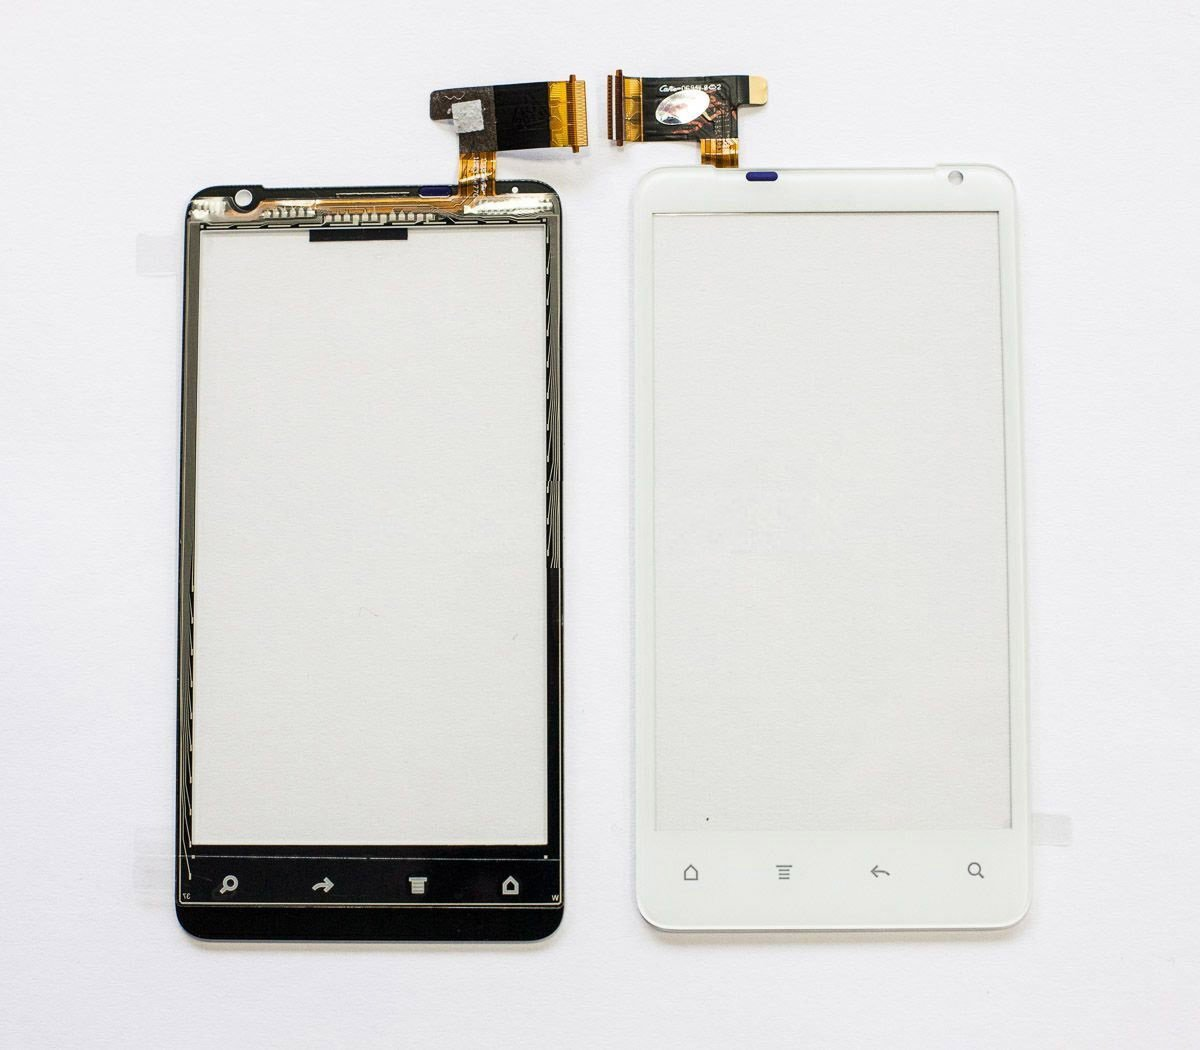 New HTC Vivid 4G AT&T White Glass Touch Screen Digitizer Repair Replacement Part